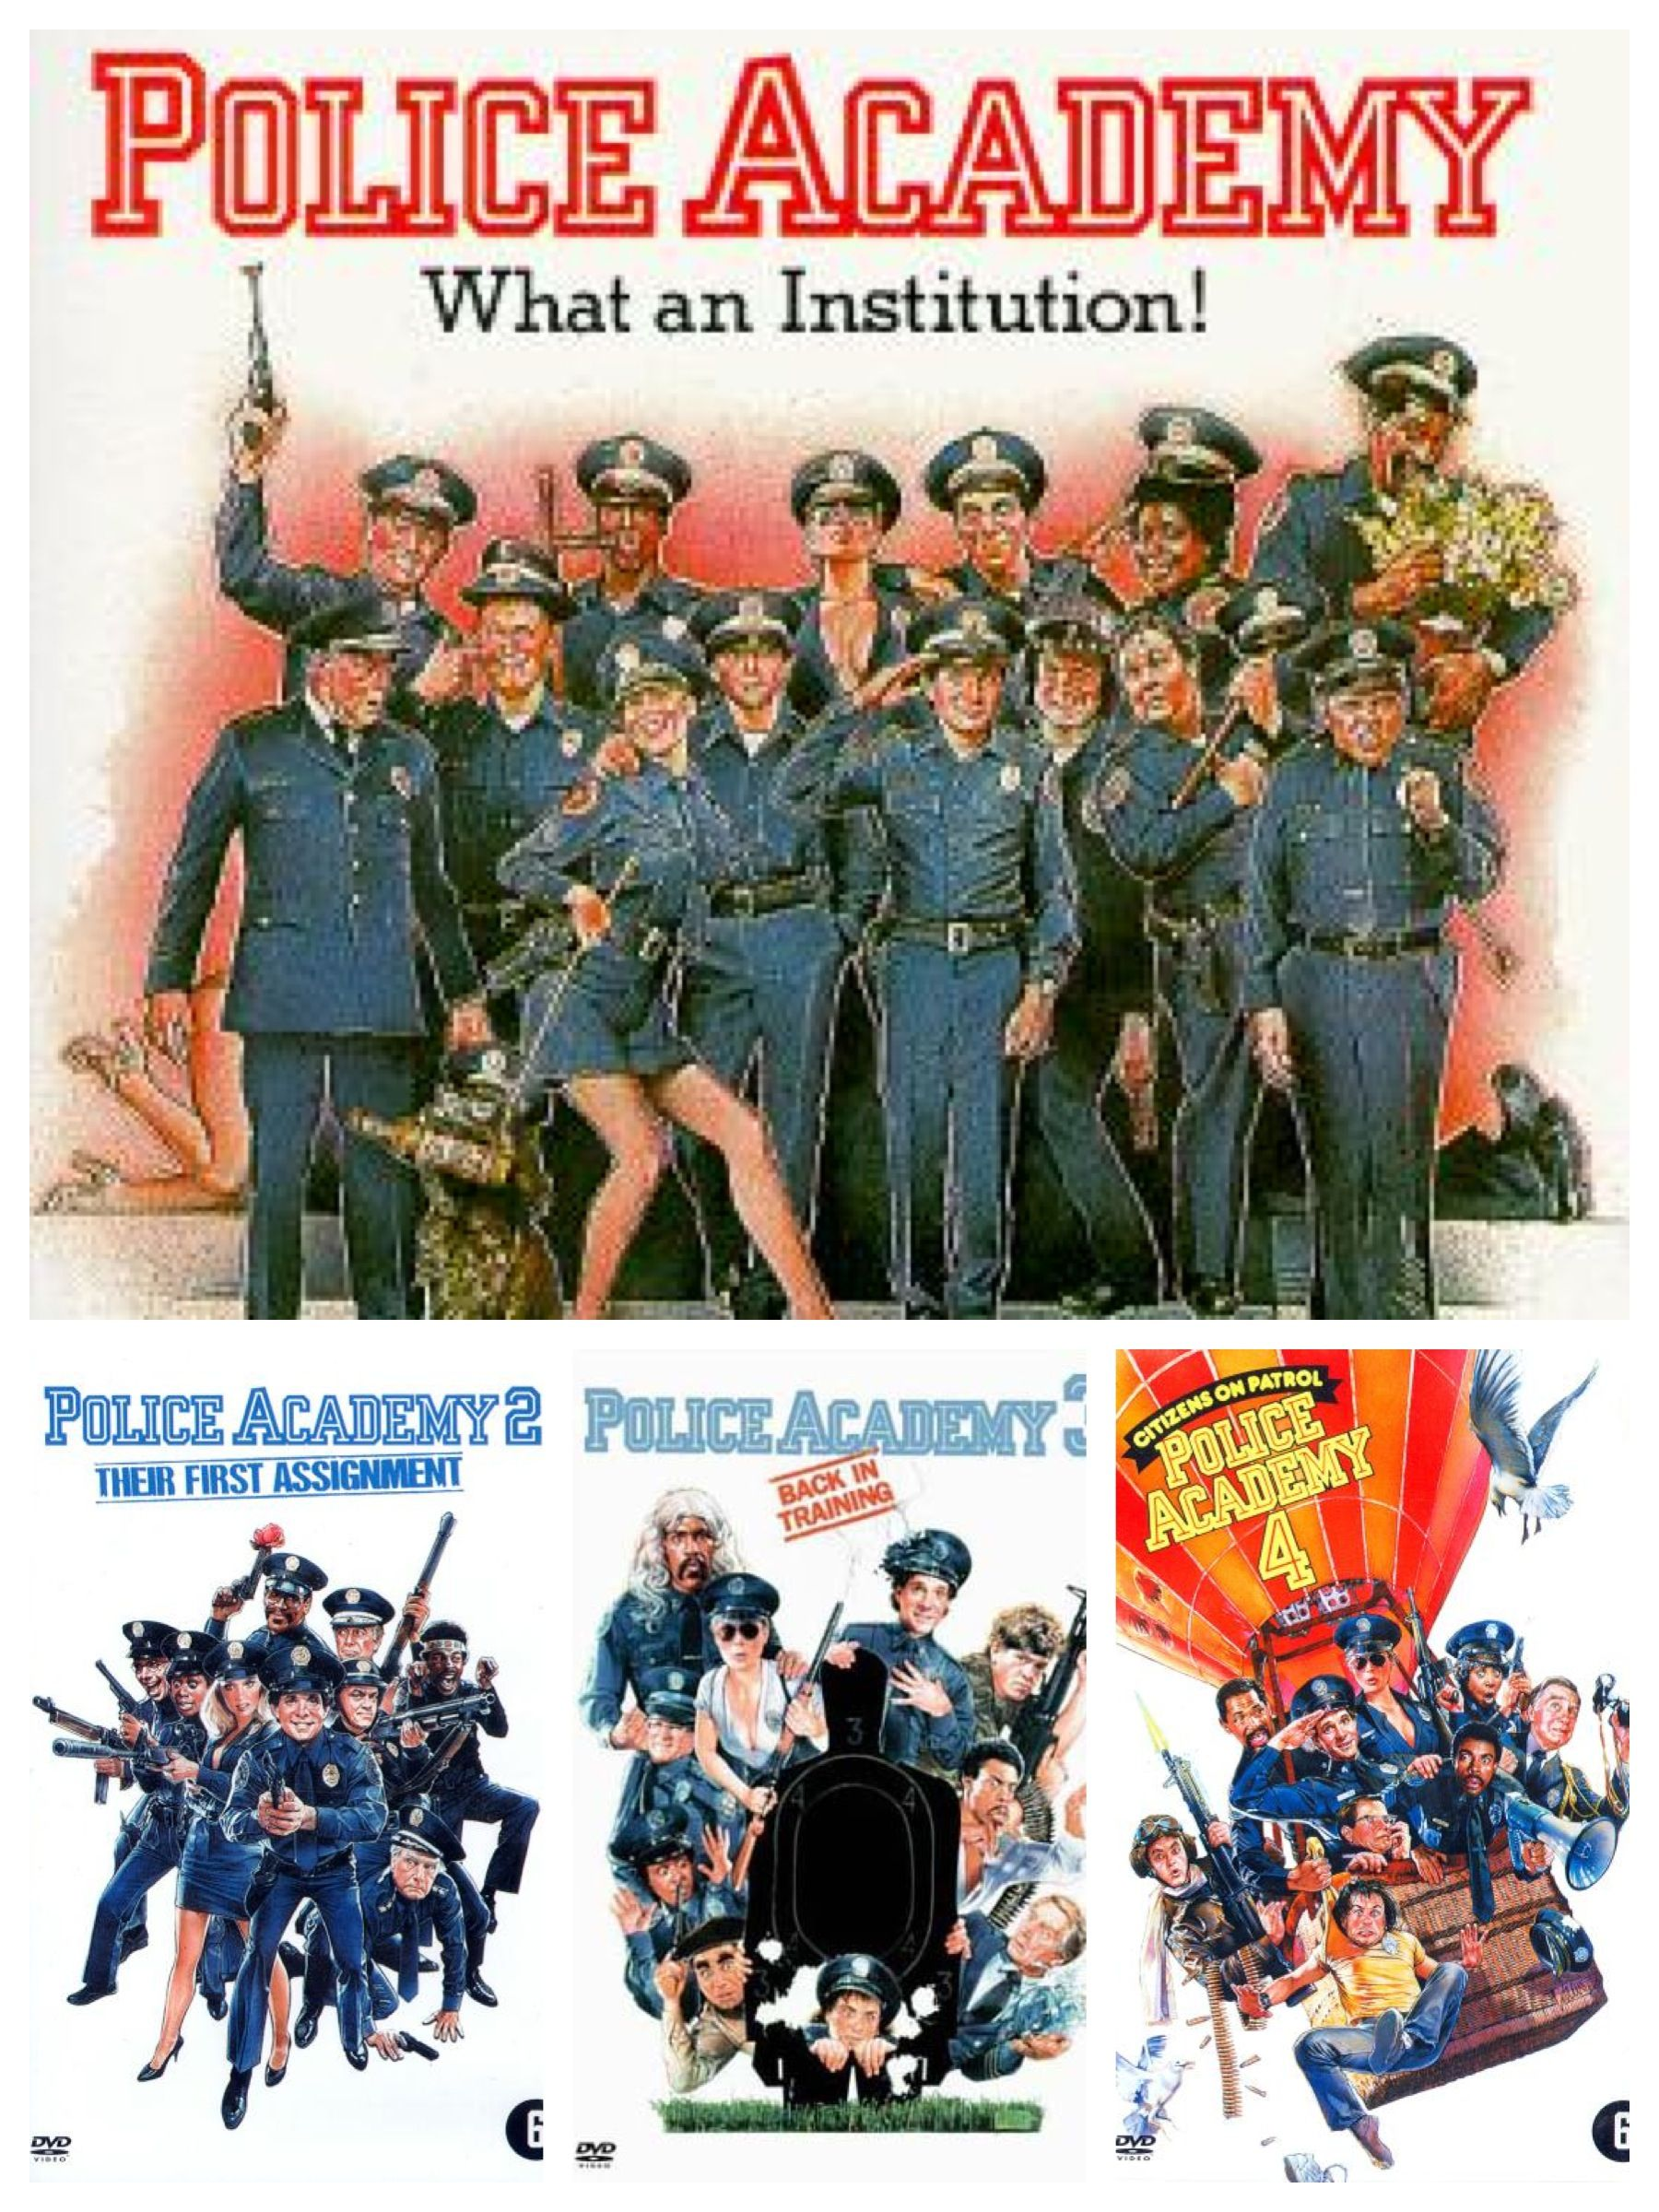 Police Academy This Is The American Comedy Movie That My First Watch When I Was A Child Soooo Funny